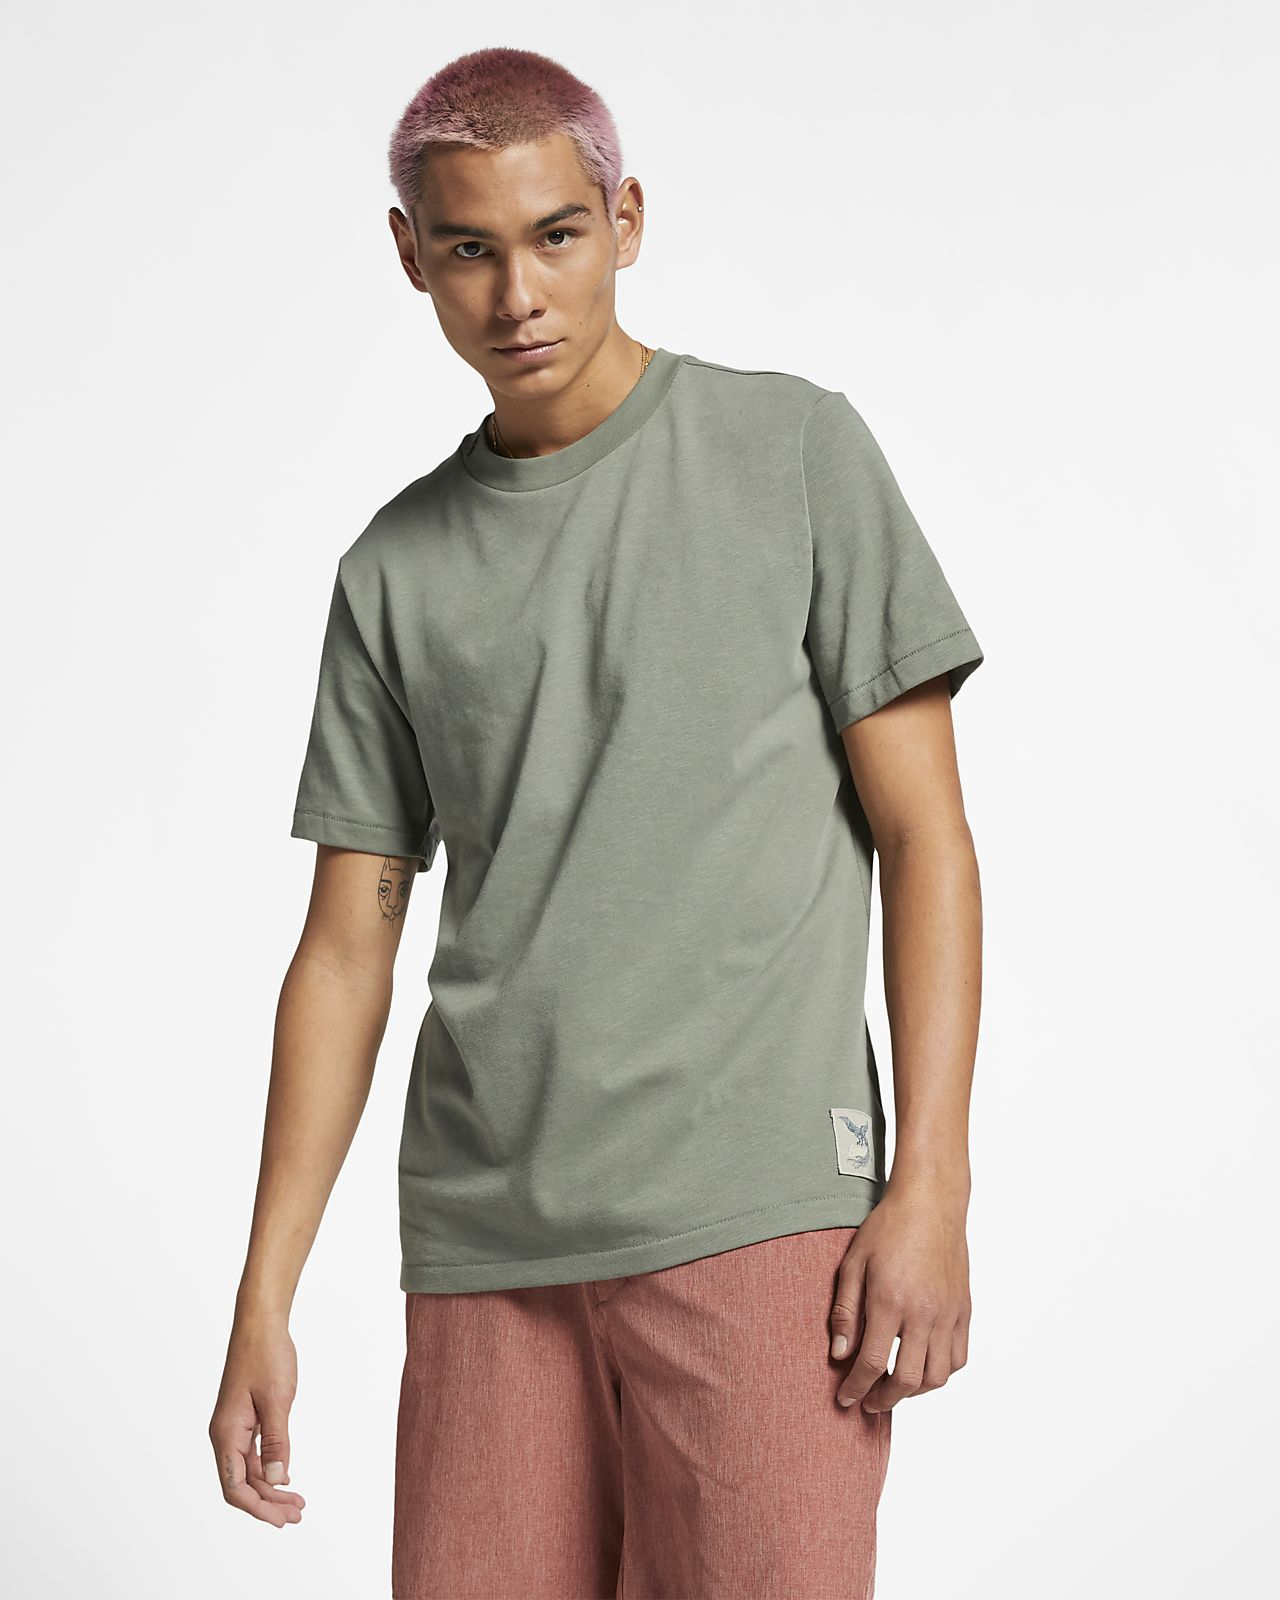 Hurley Dri-FIT Savage Men's Short-Sleeve Top